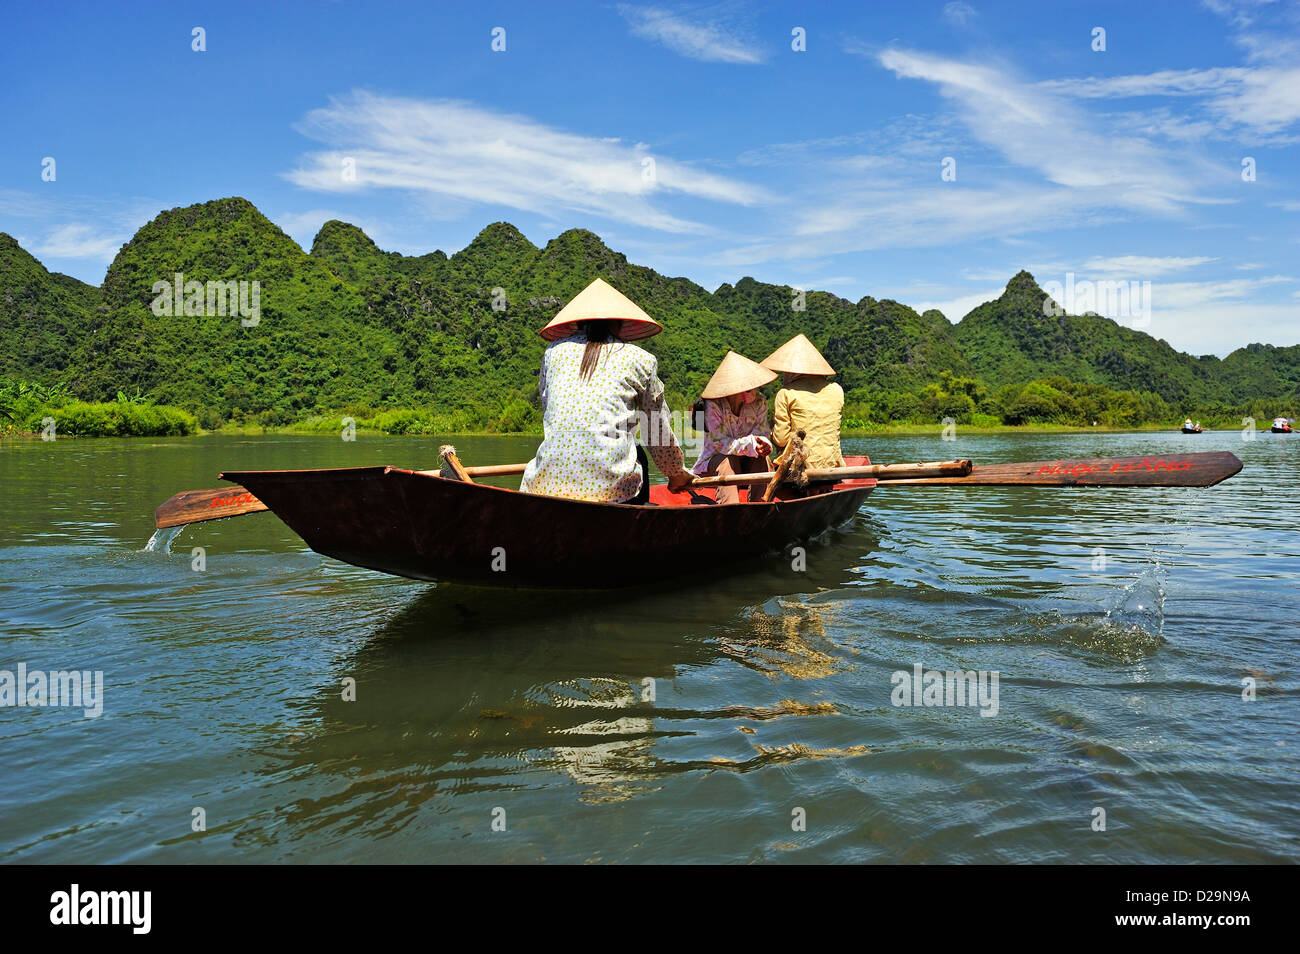 Yen River leading to Perfume Pagoda, near Hanoi, Vietnam - Stock Image